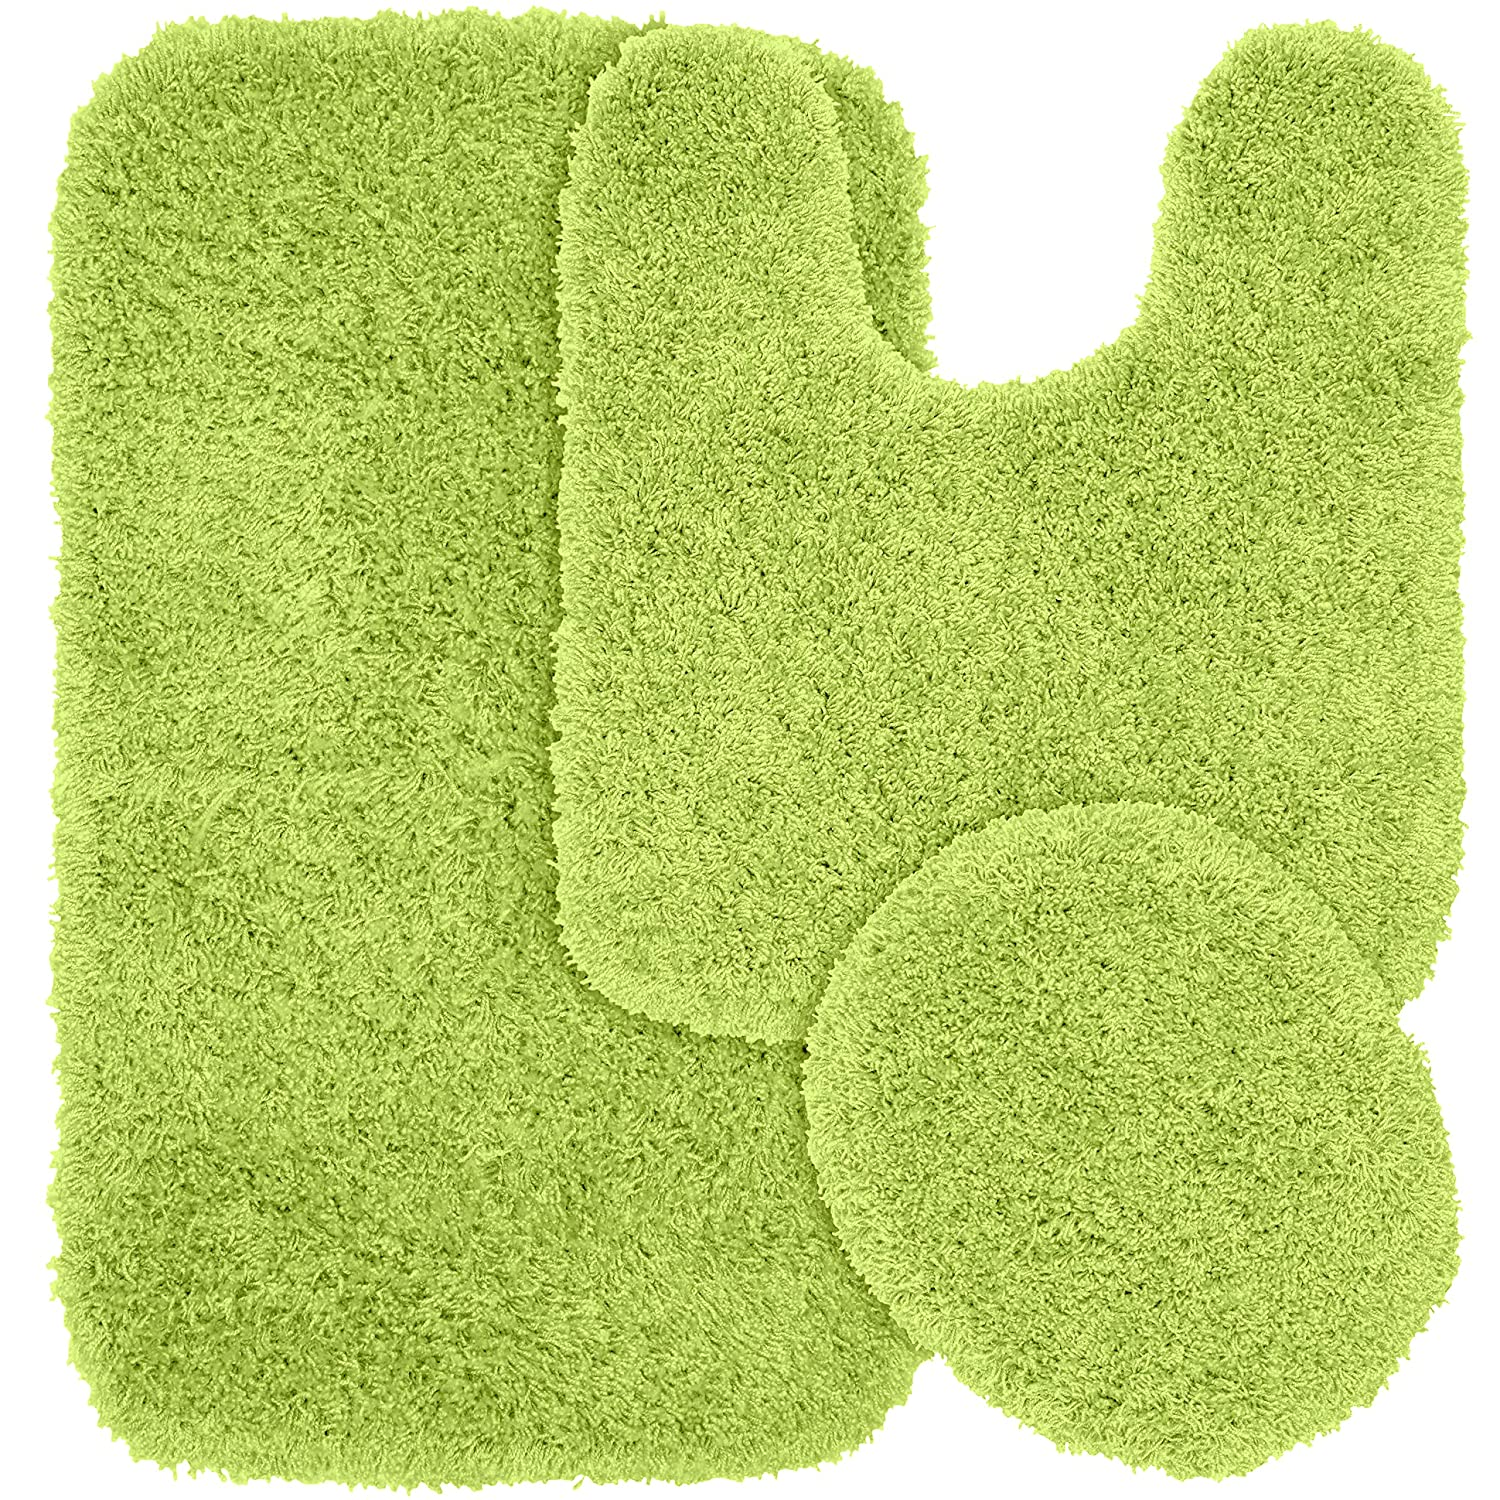 Amazoncom Garland Rug Piece Jazz Shaggy Washable Nylon - Lime green bath mat for bathroom decorating ideas